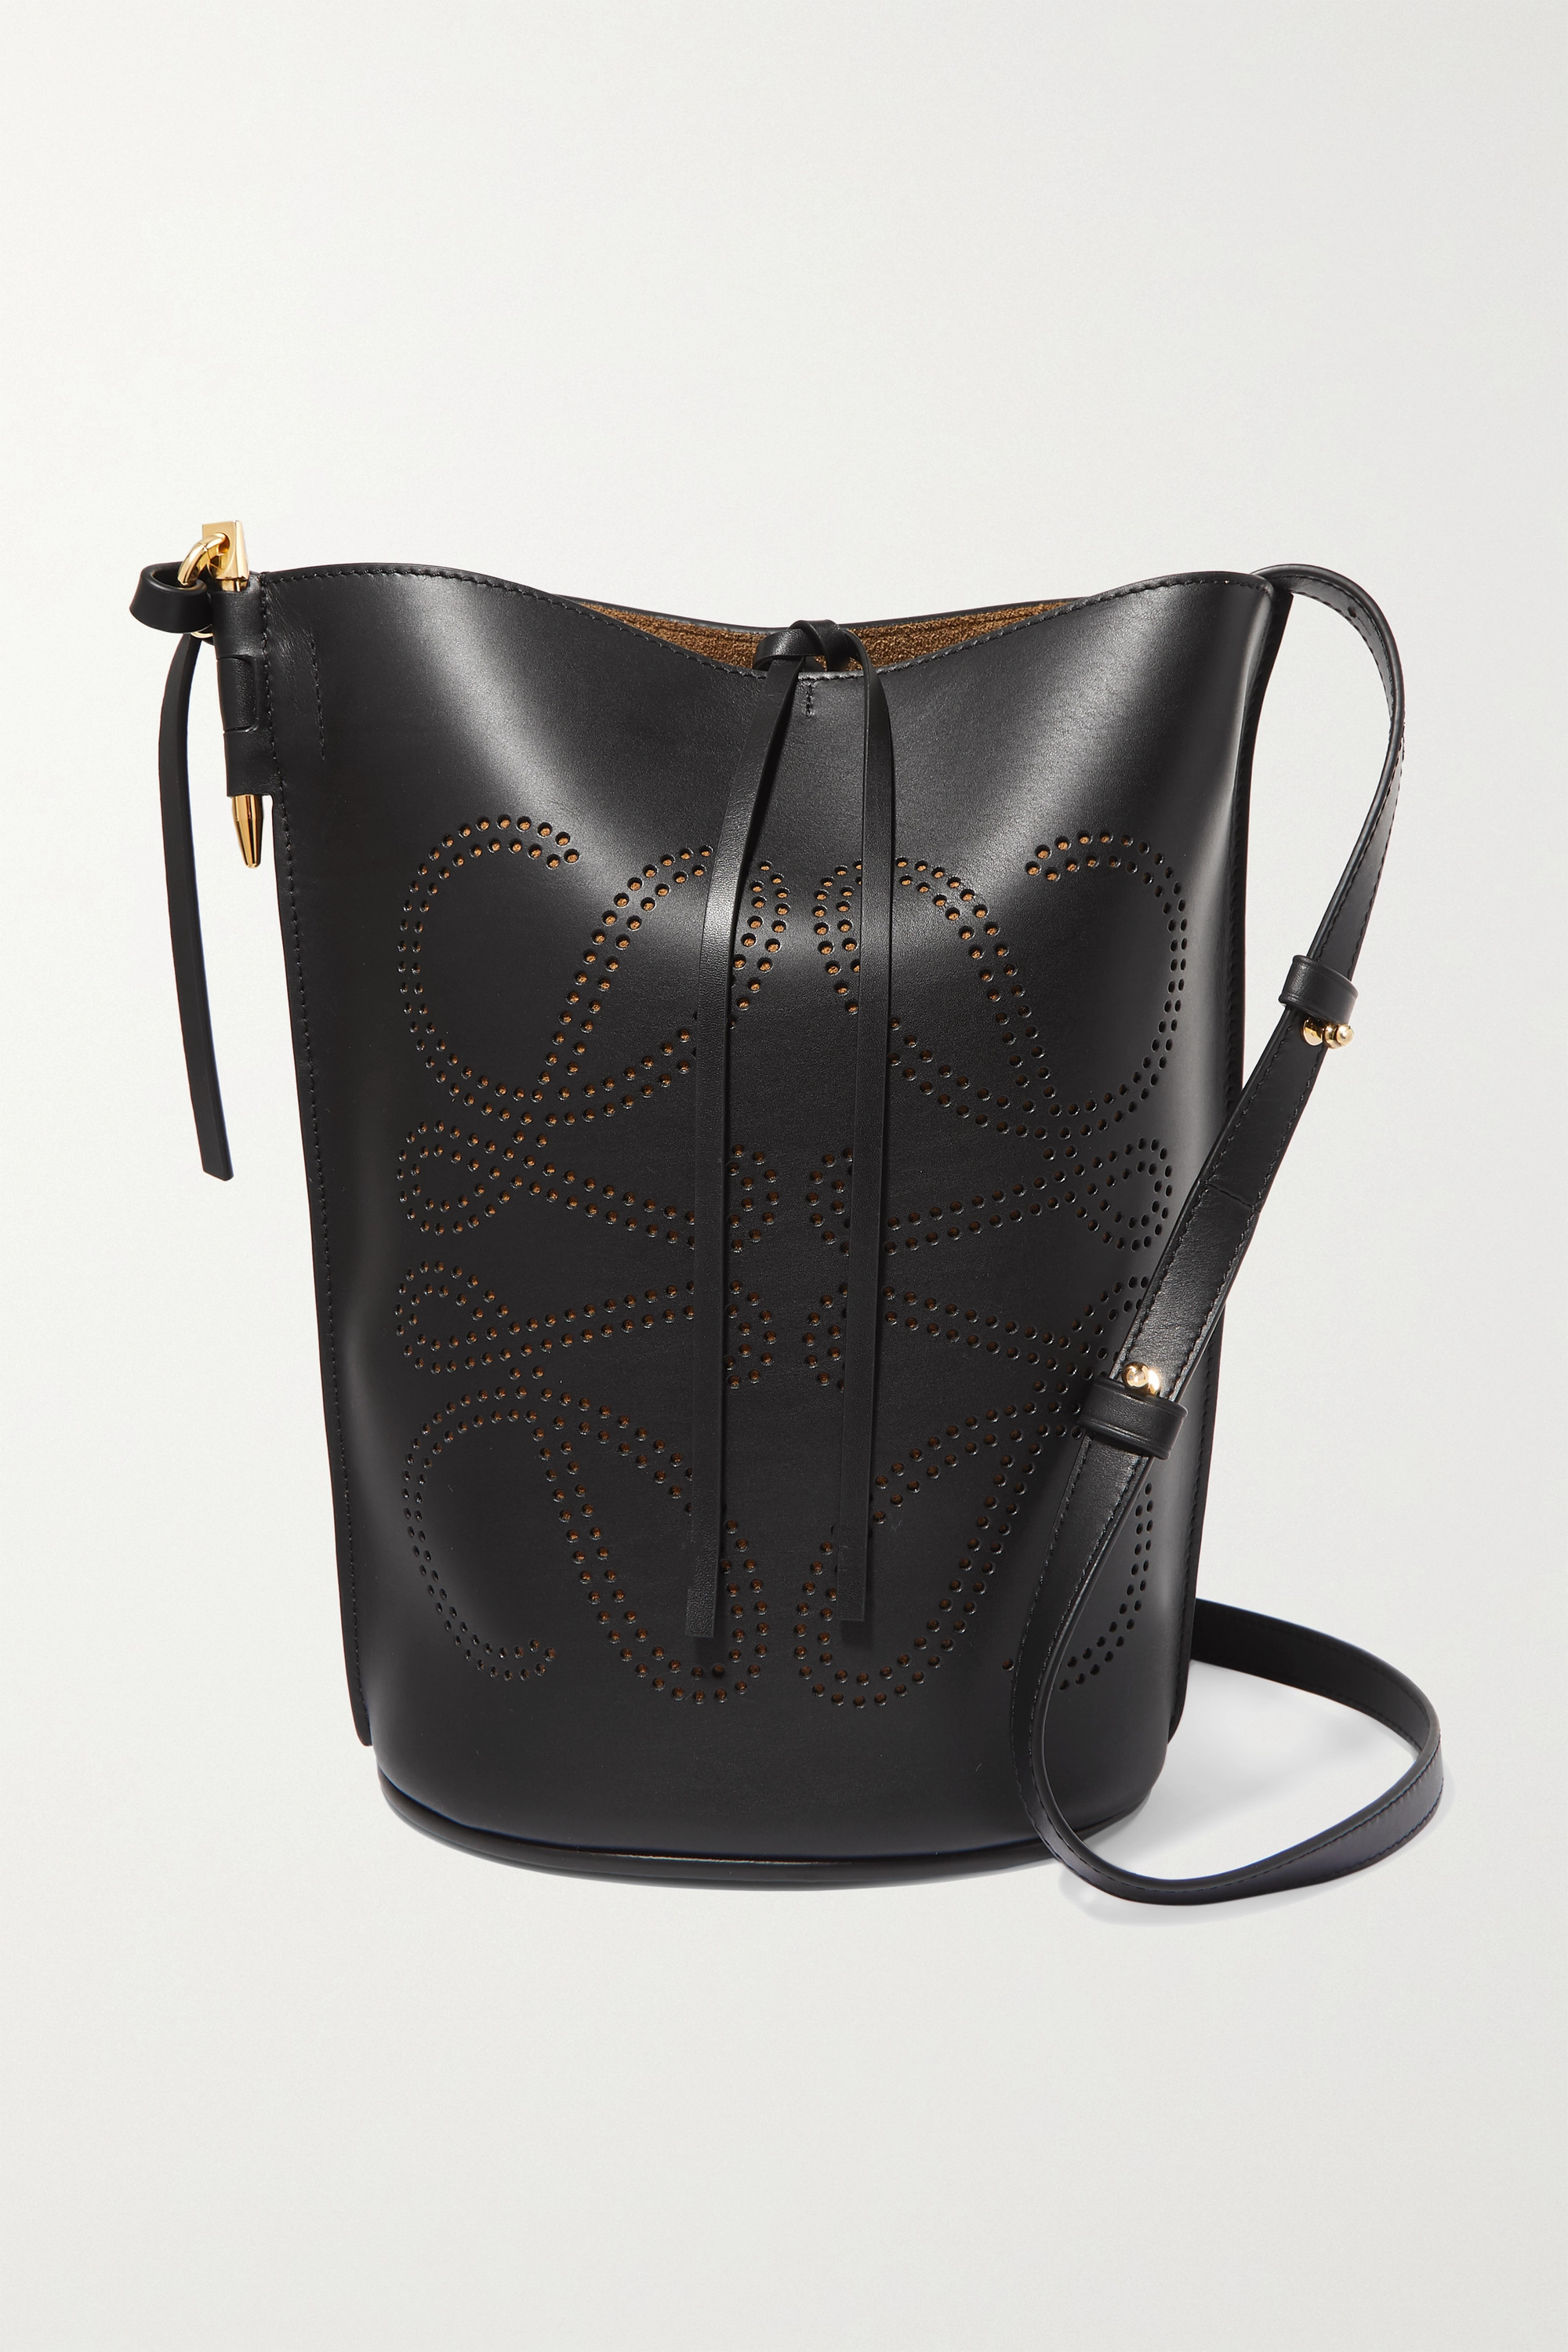 Loewe Gate perforated leather bucket bag